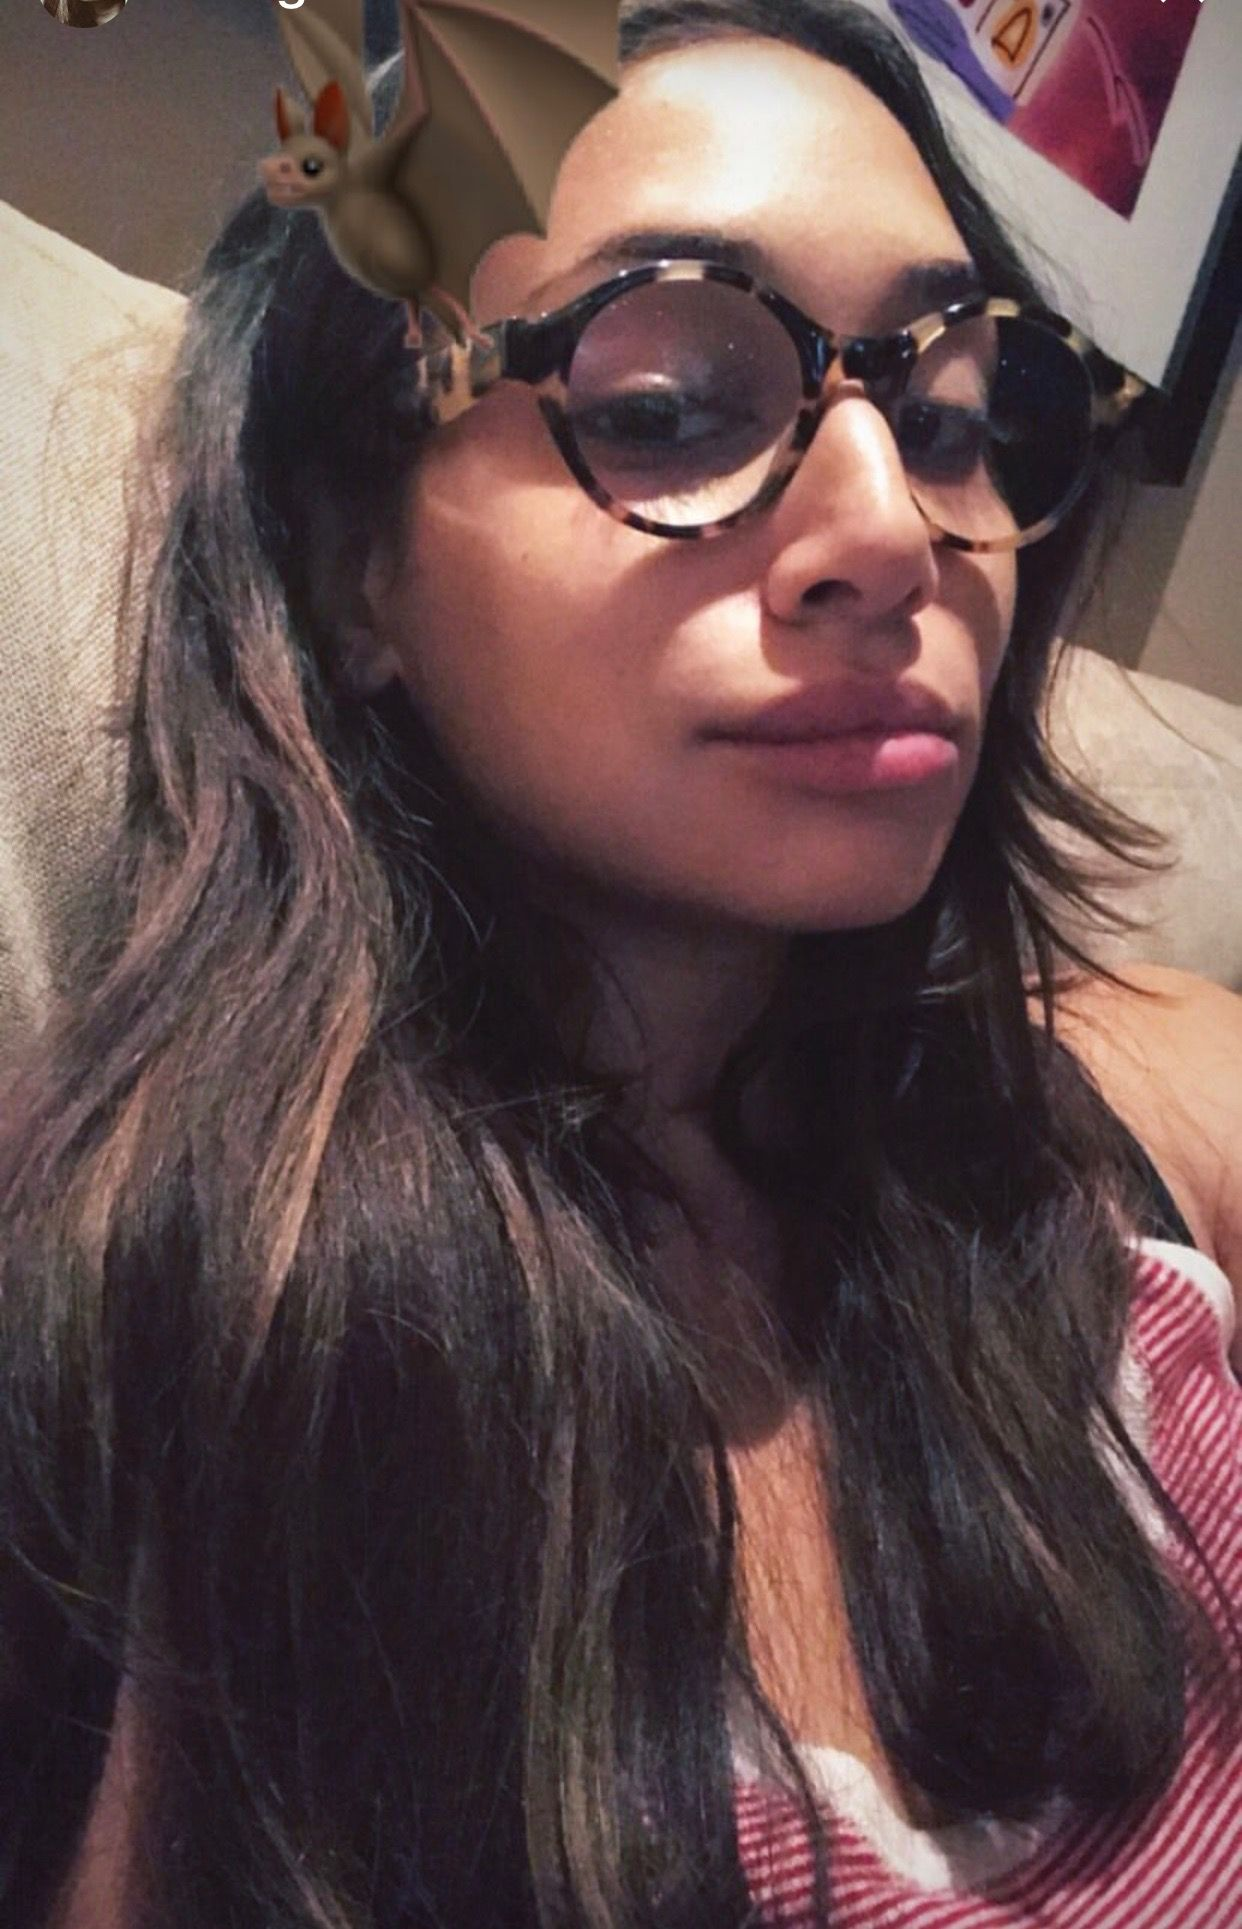 Meaghan rath taking a selfie in a mirror naked (56 photo)